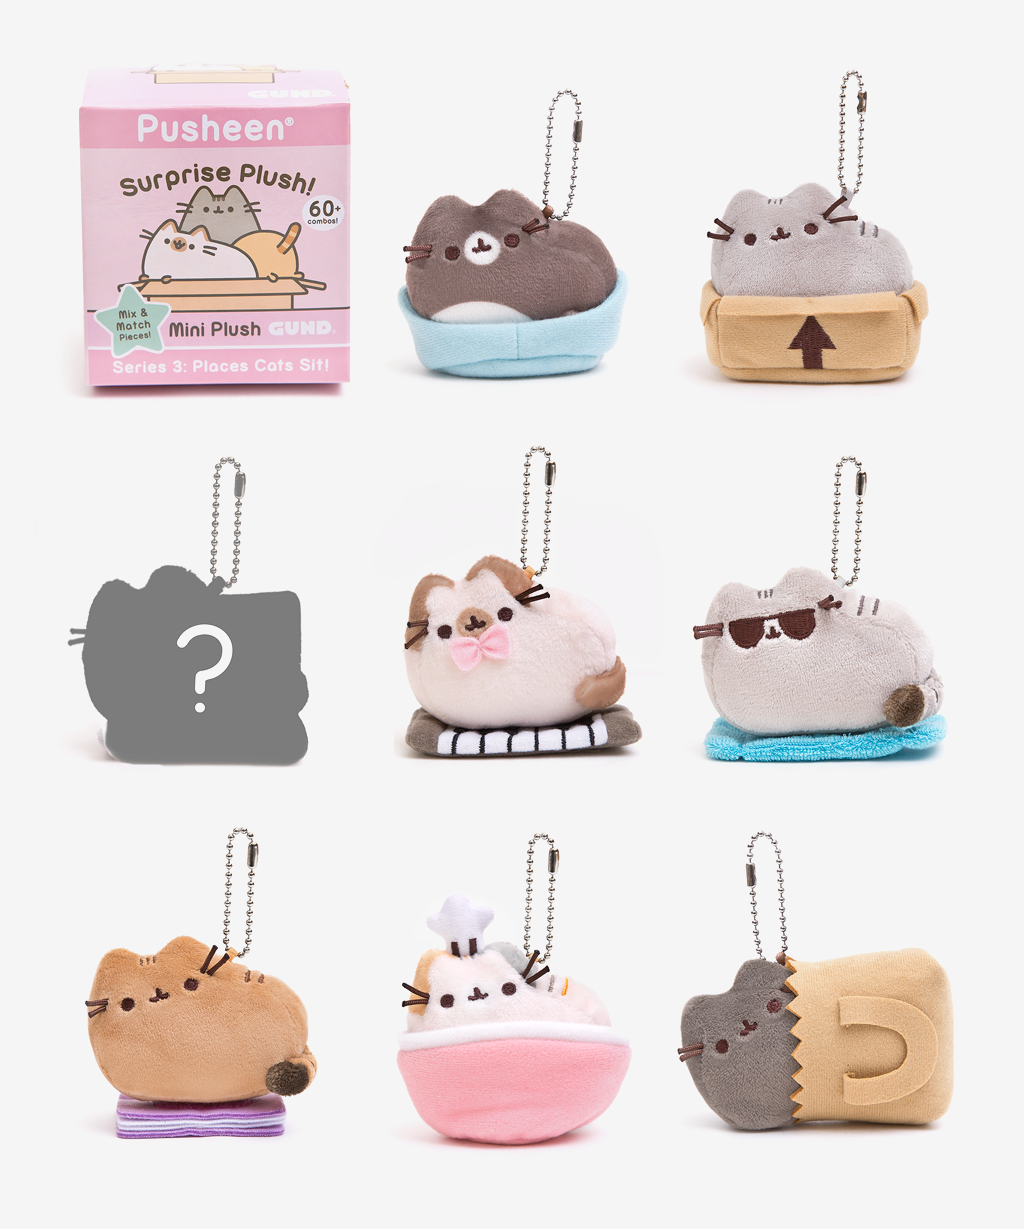 Pusheen Surprise Plush Blind Box Places Cats Sit Hey